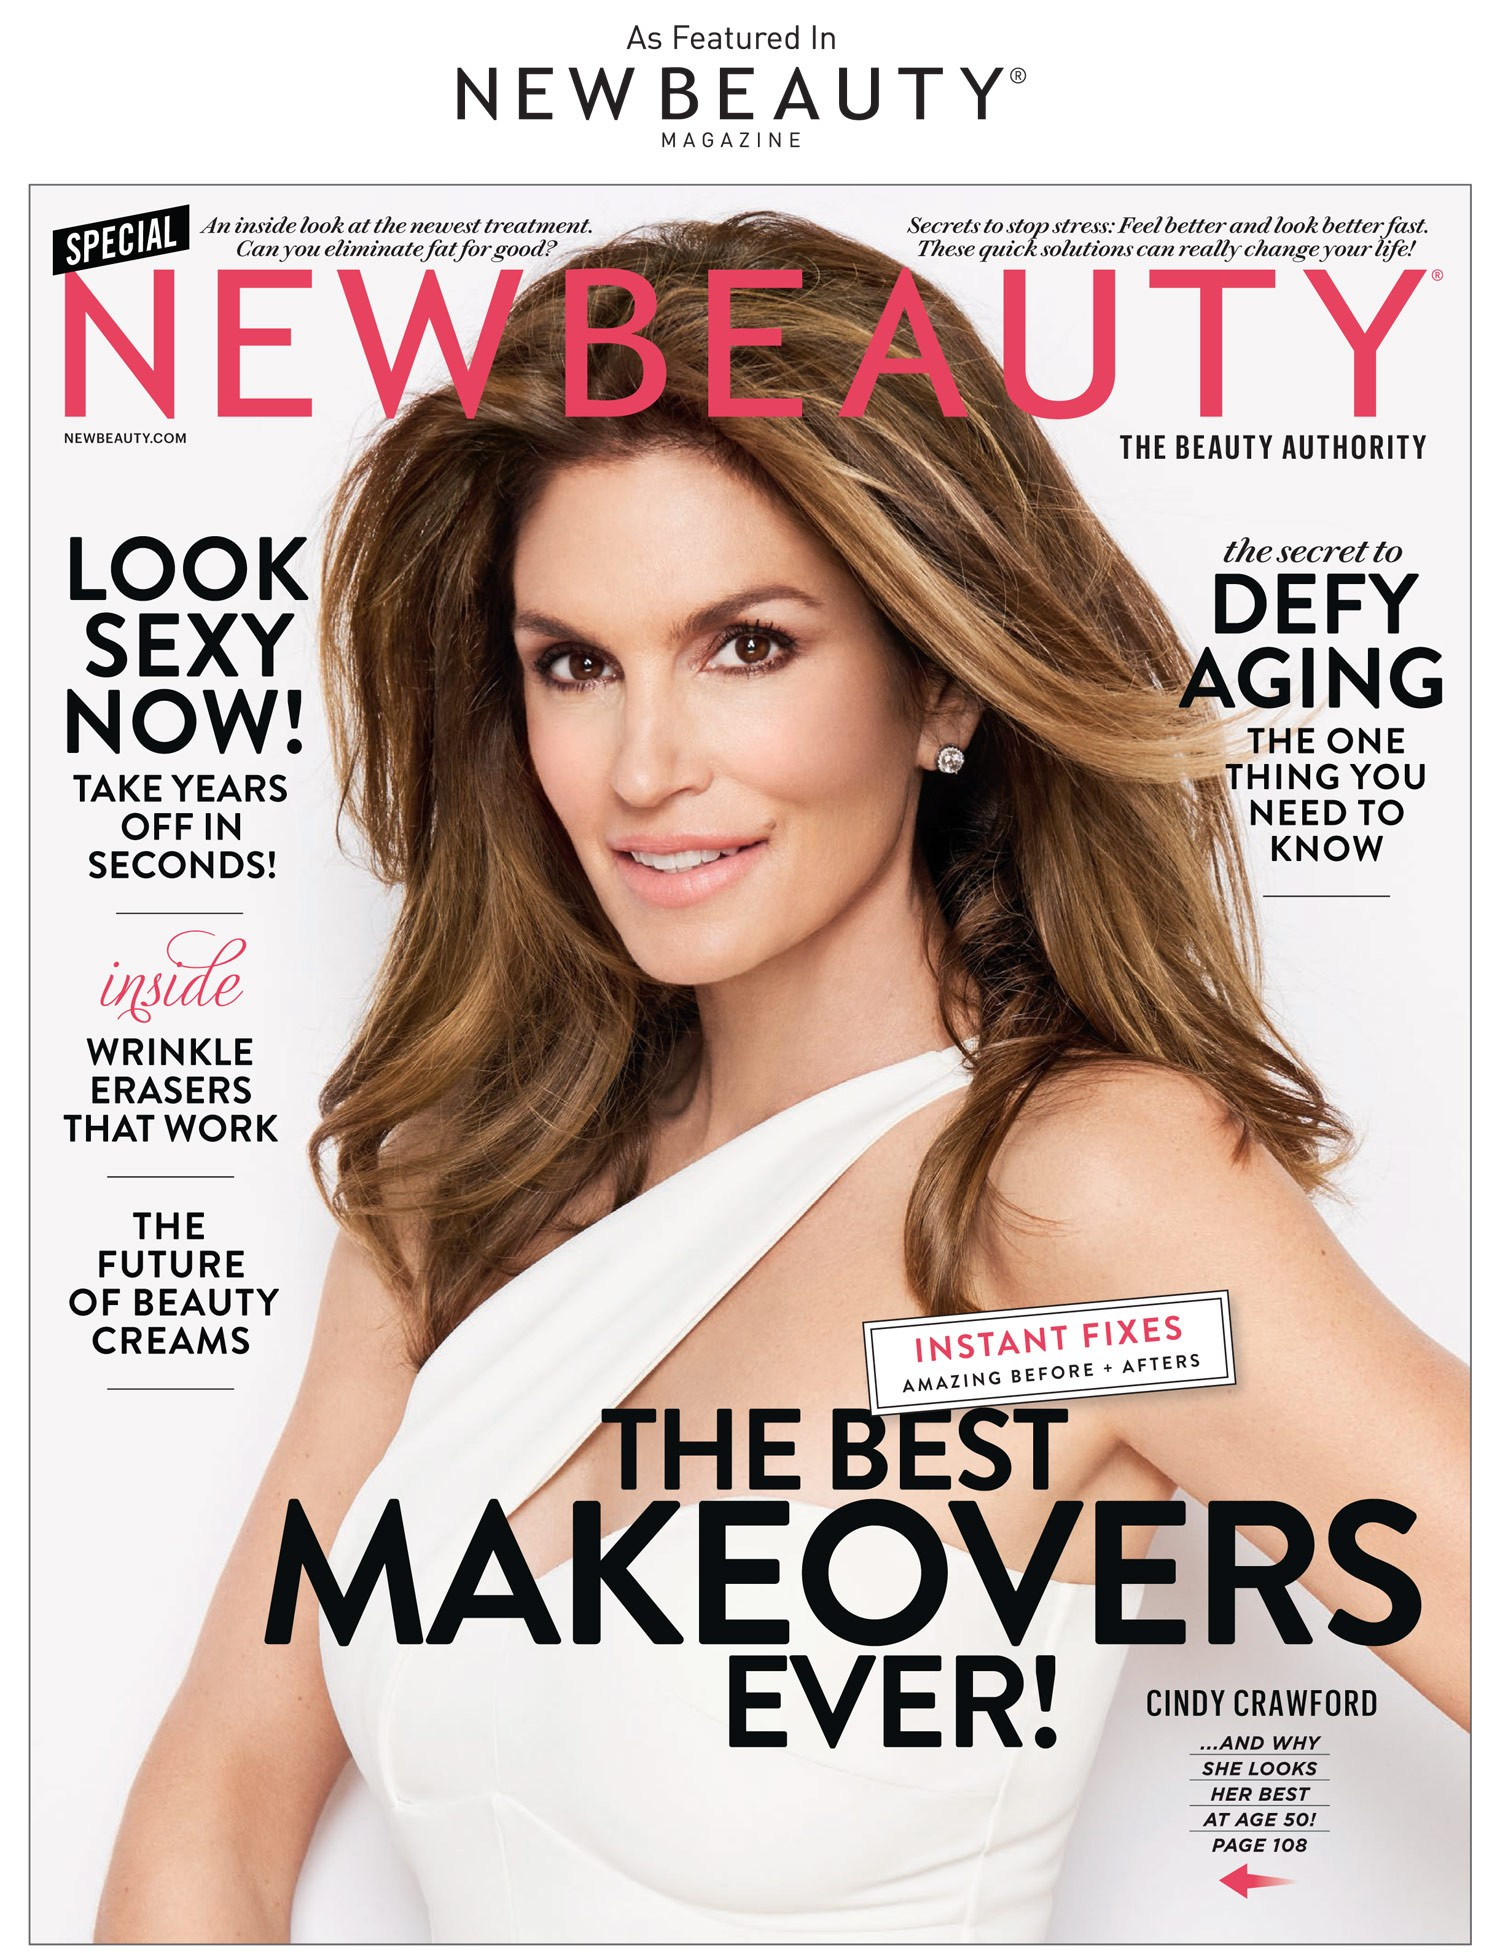 Dr. Francis is featured in this article of New Beauty January issue - cover